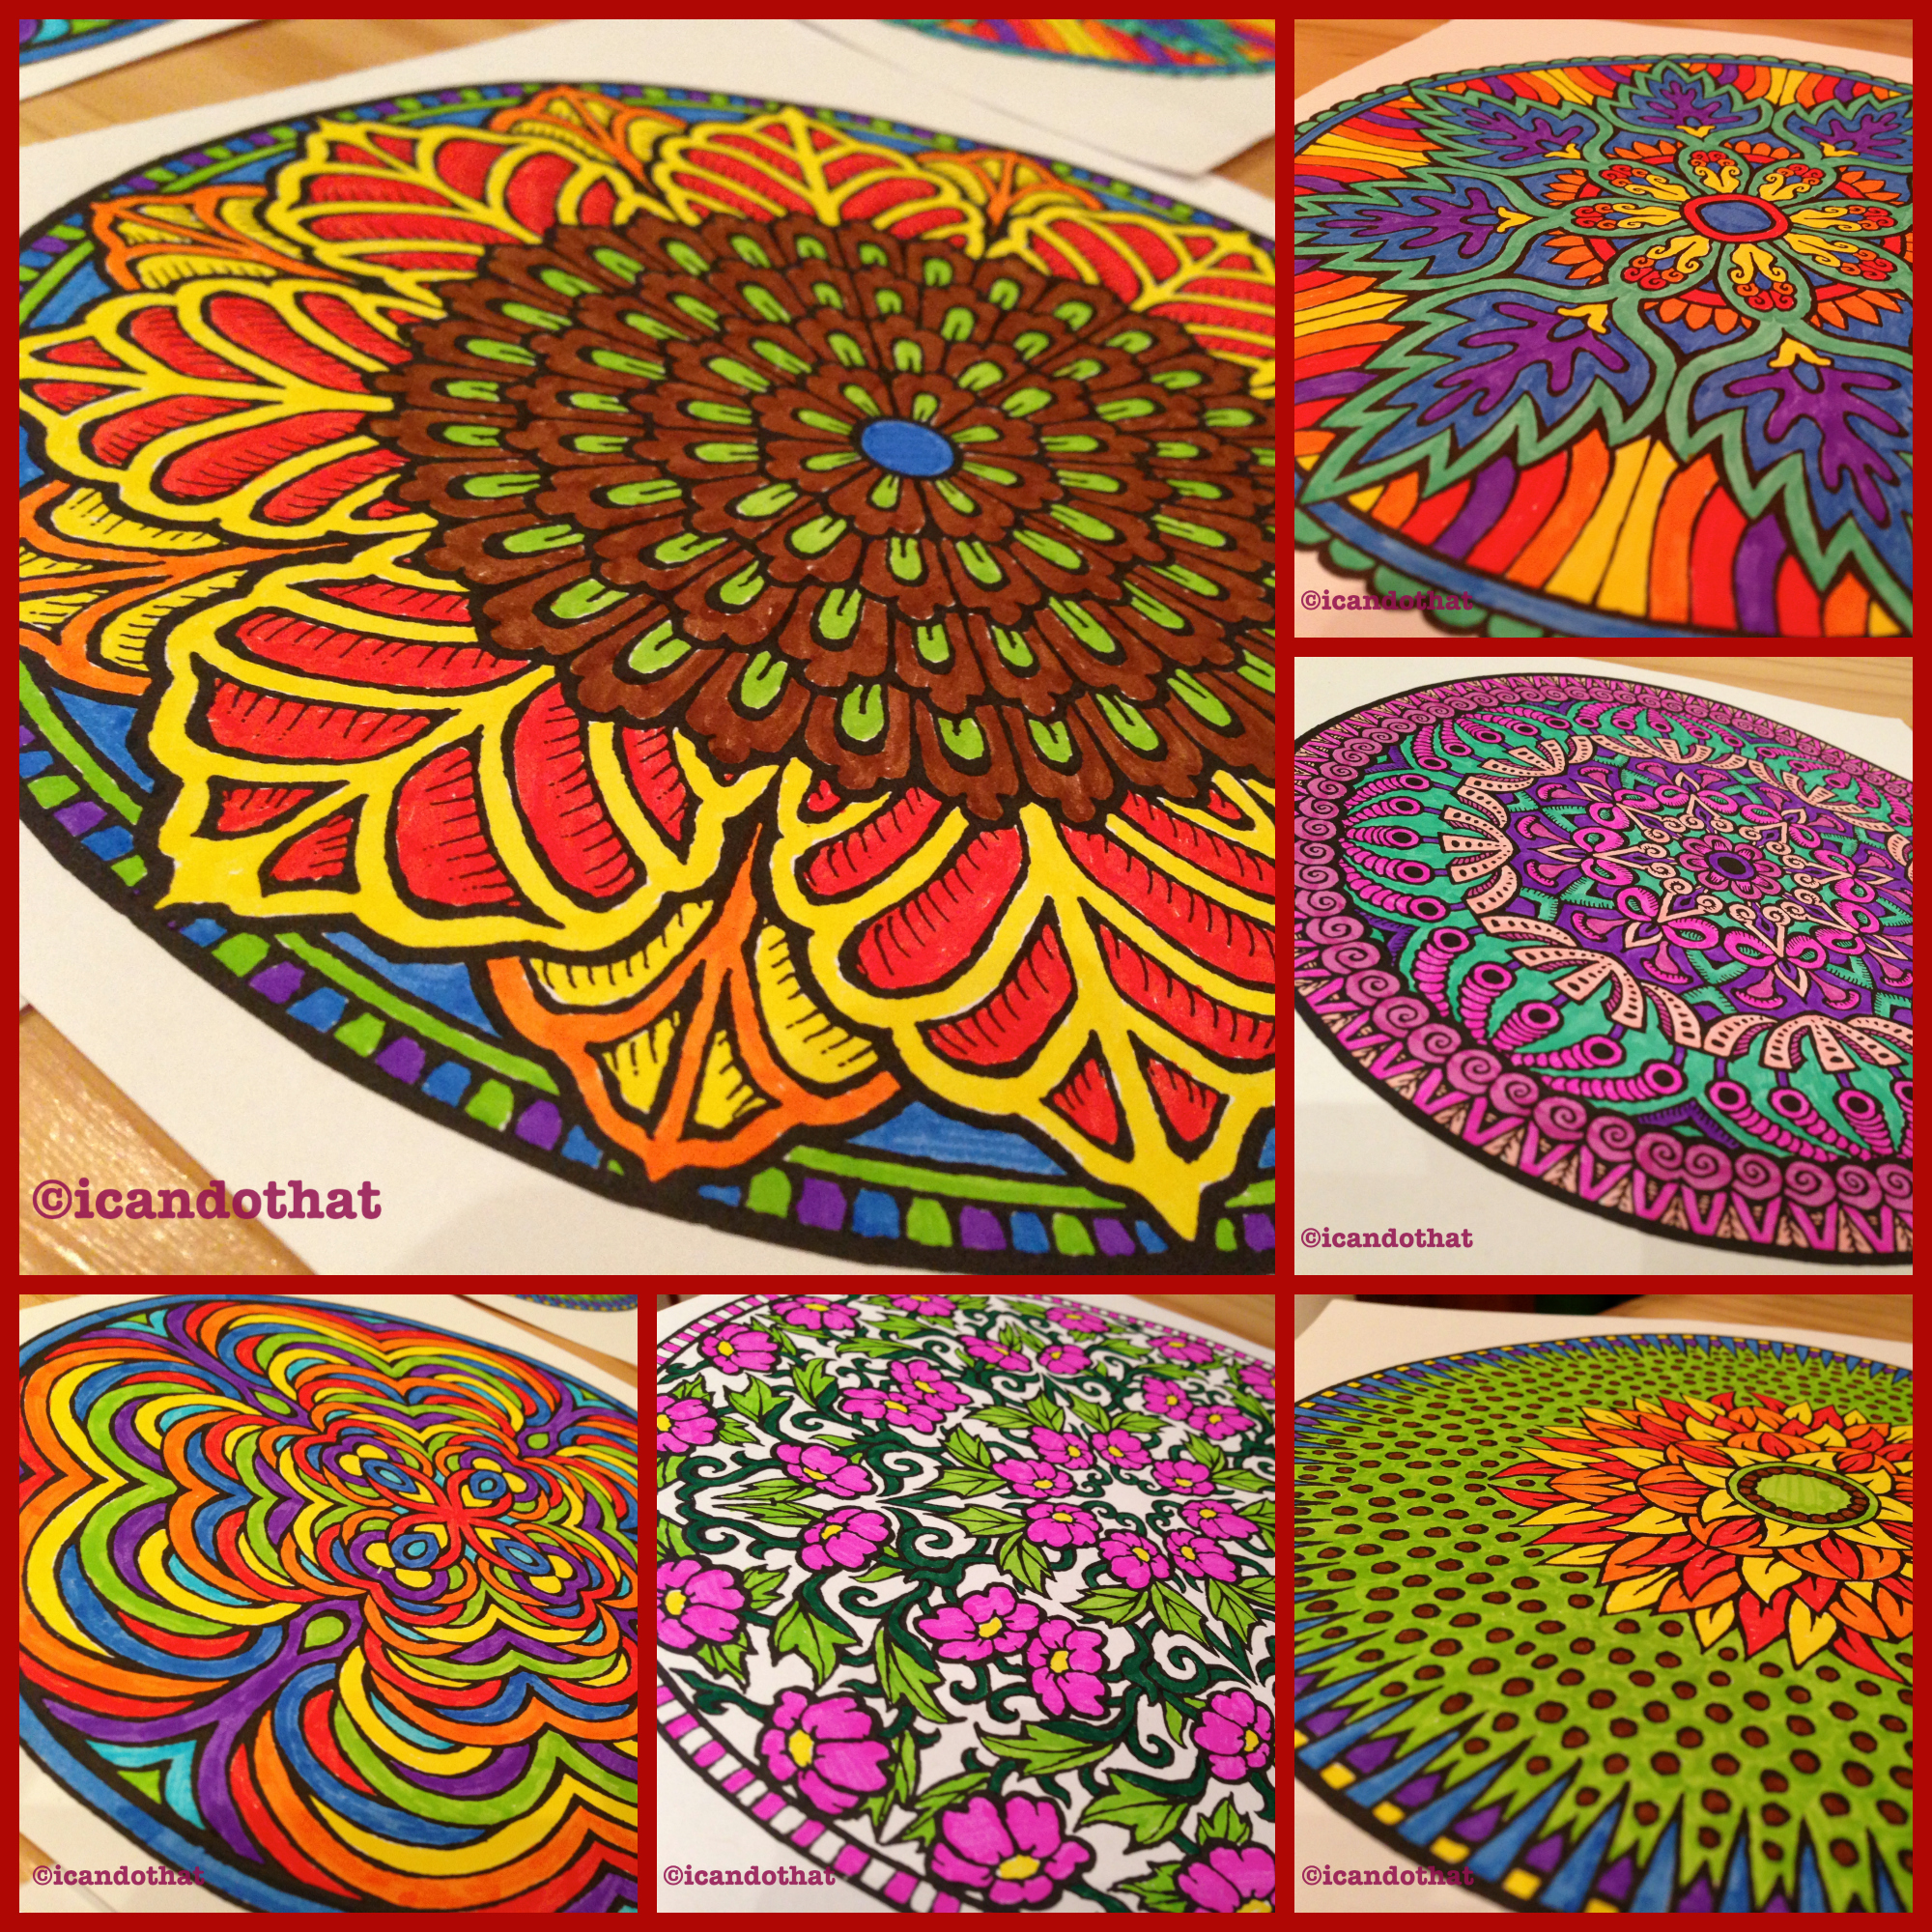 Mystical mandala coloring pages - Anyway Mandala Designs Have Been Around For A Long Time They Have Been Used In Hinduism Buddhism And Christianity To Represent The Universe From The